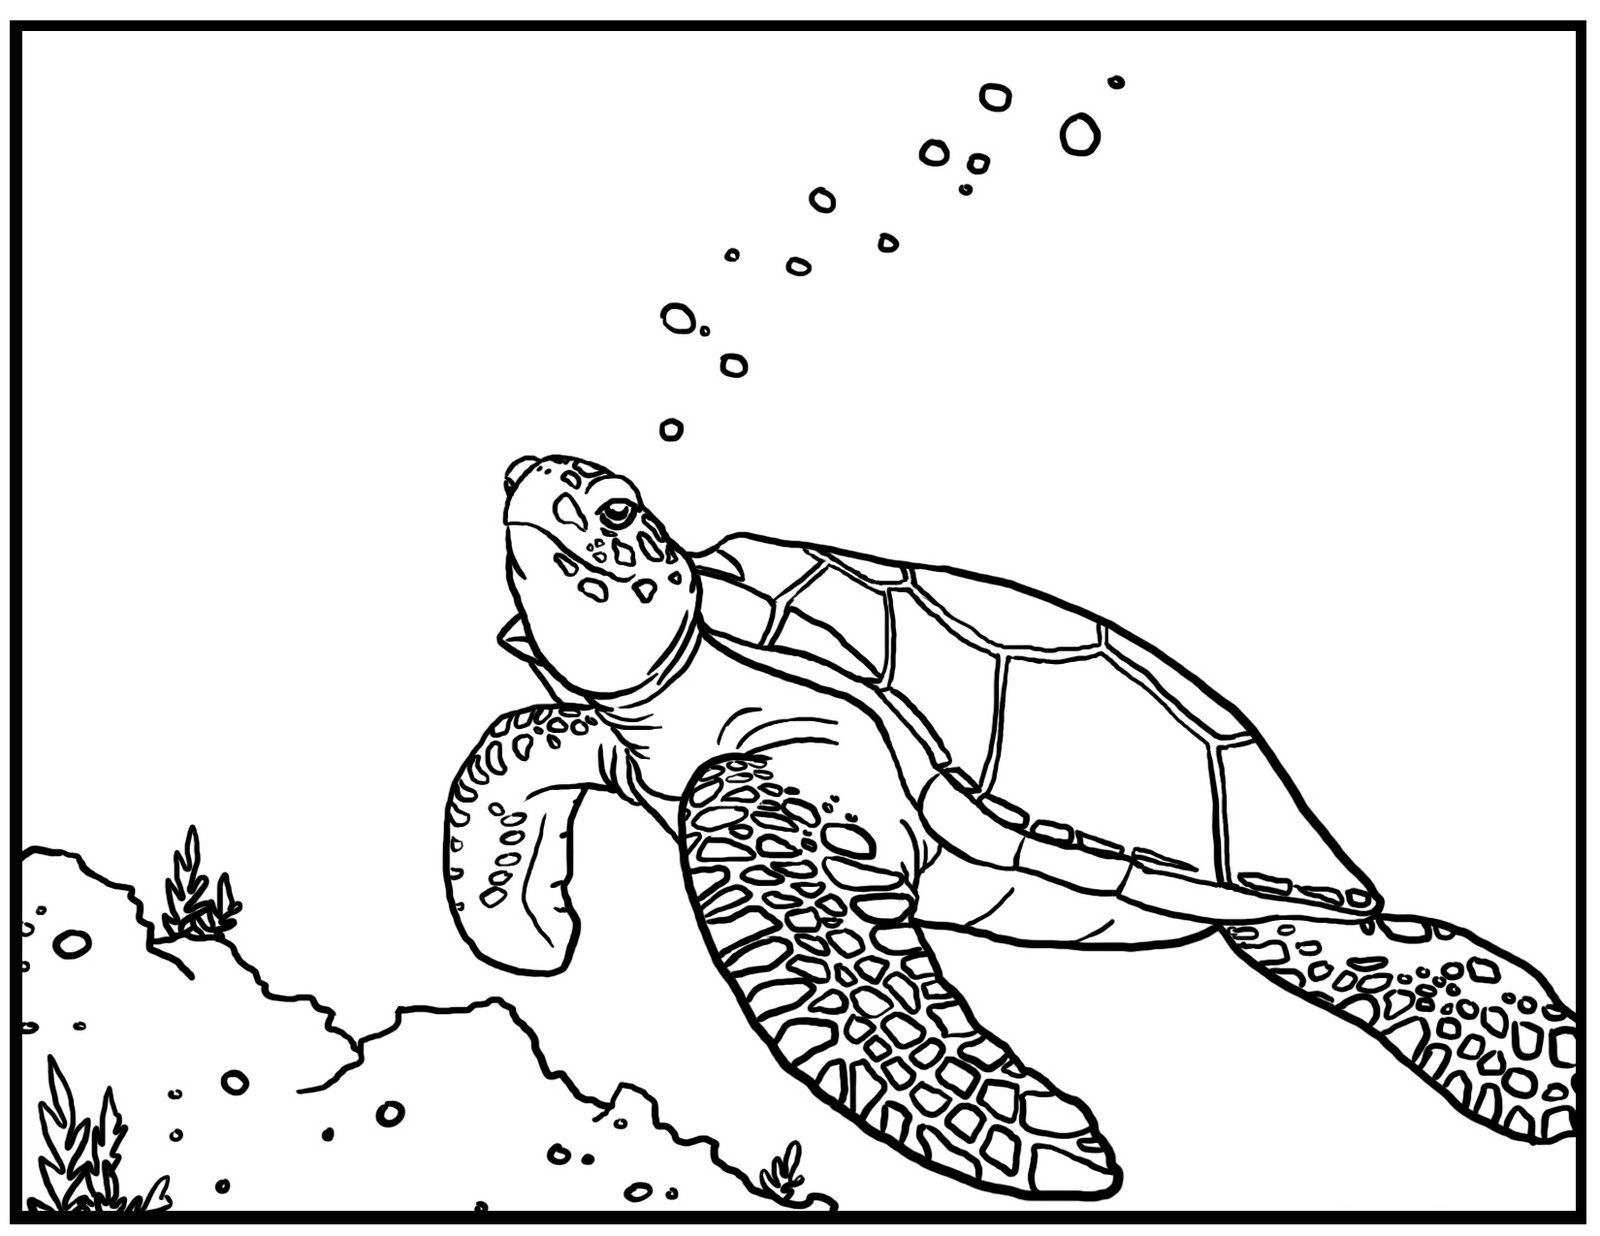 Sea Turtle Coloring Page Free Printable Turtle Coloring Pages For Kids  Business Info